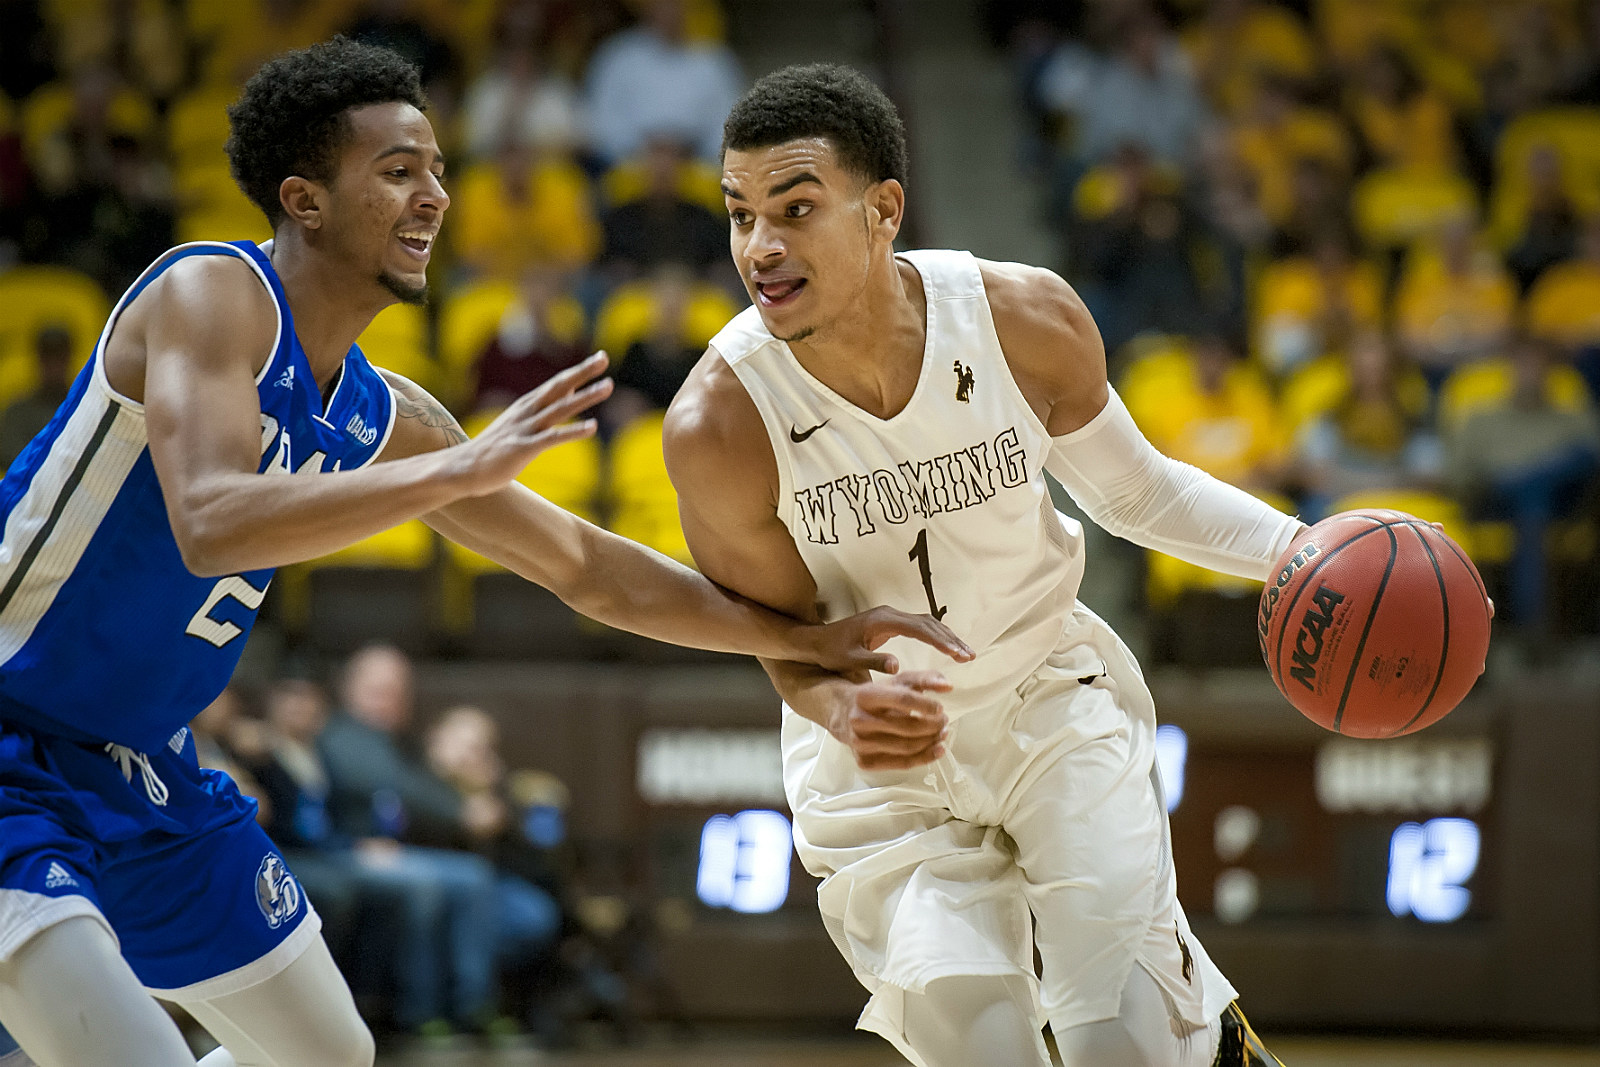 cowboy basketball schedule revealed for 2018-19